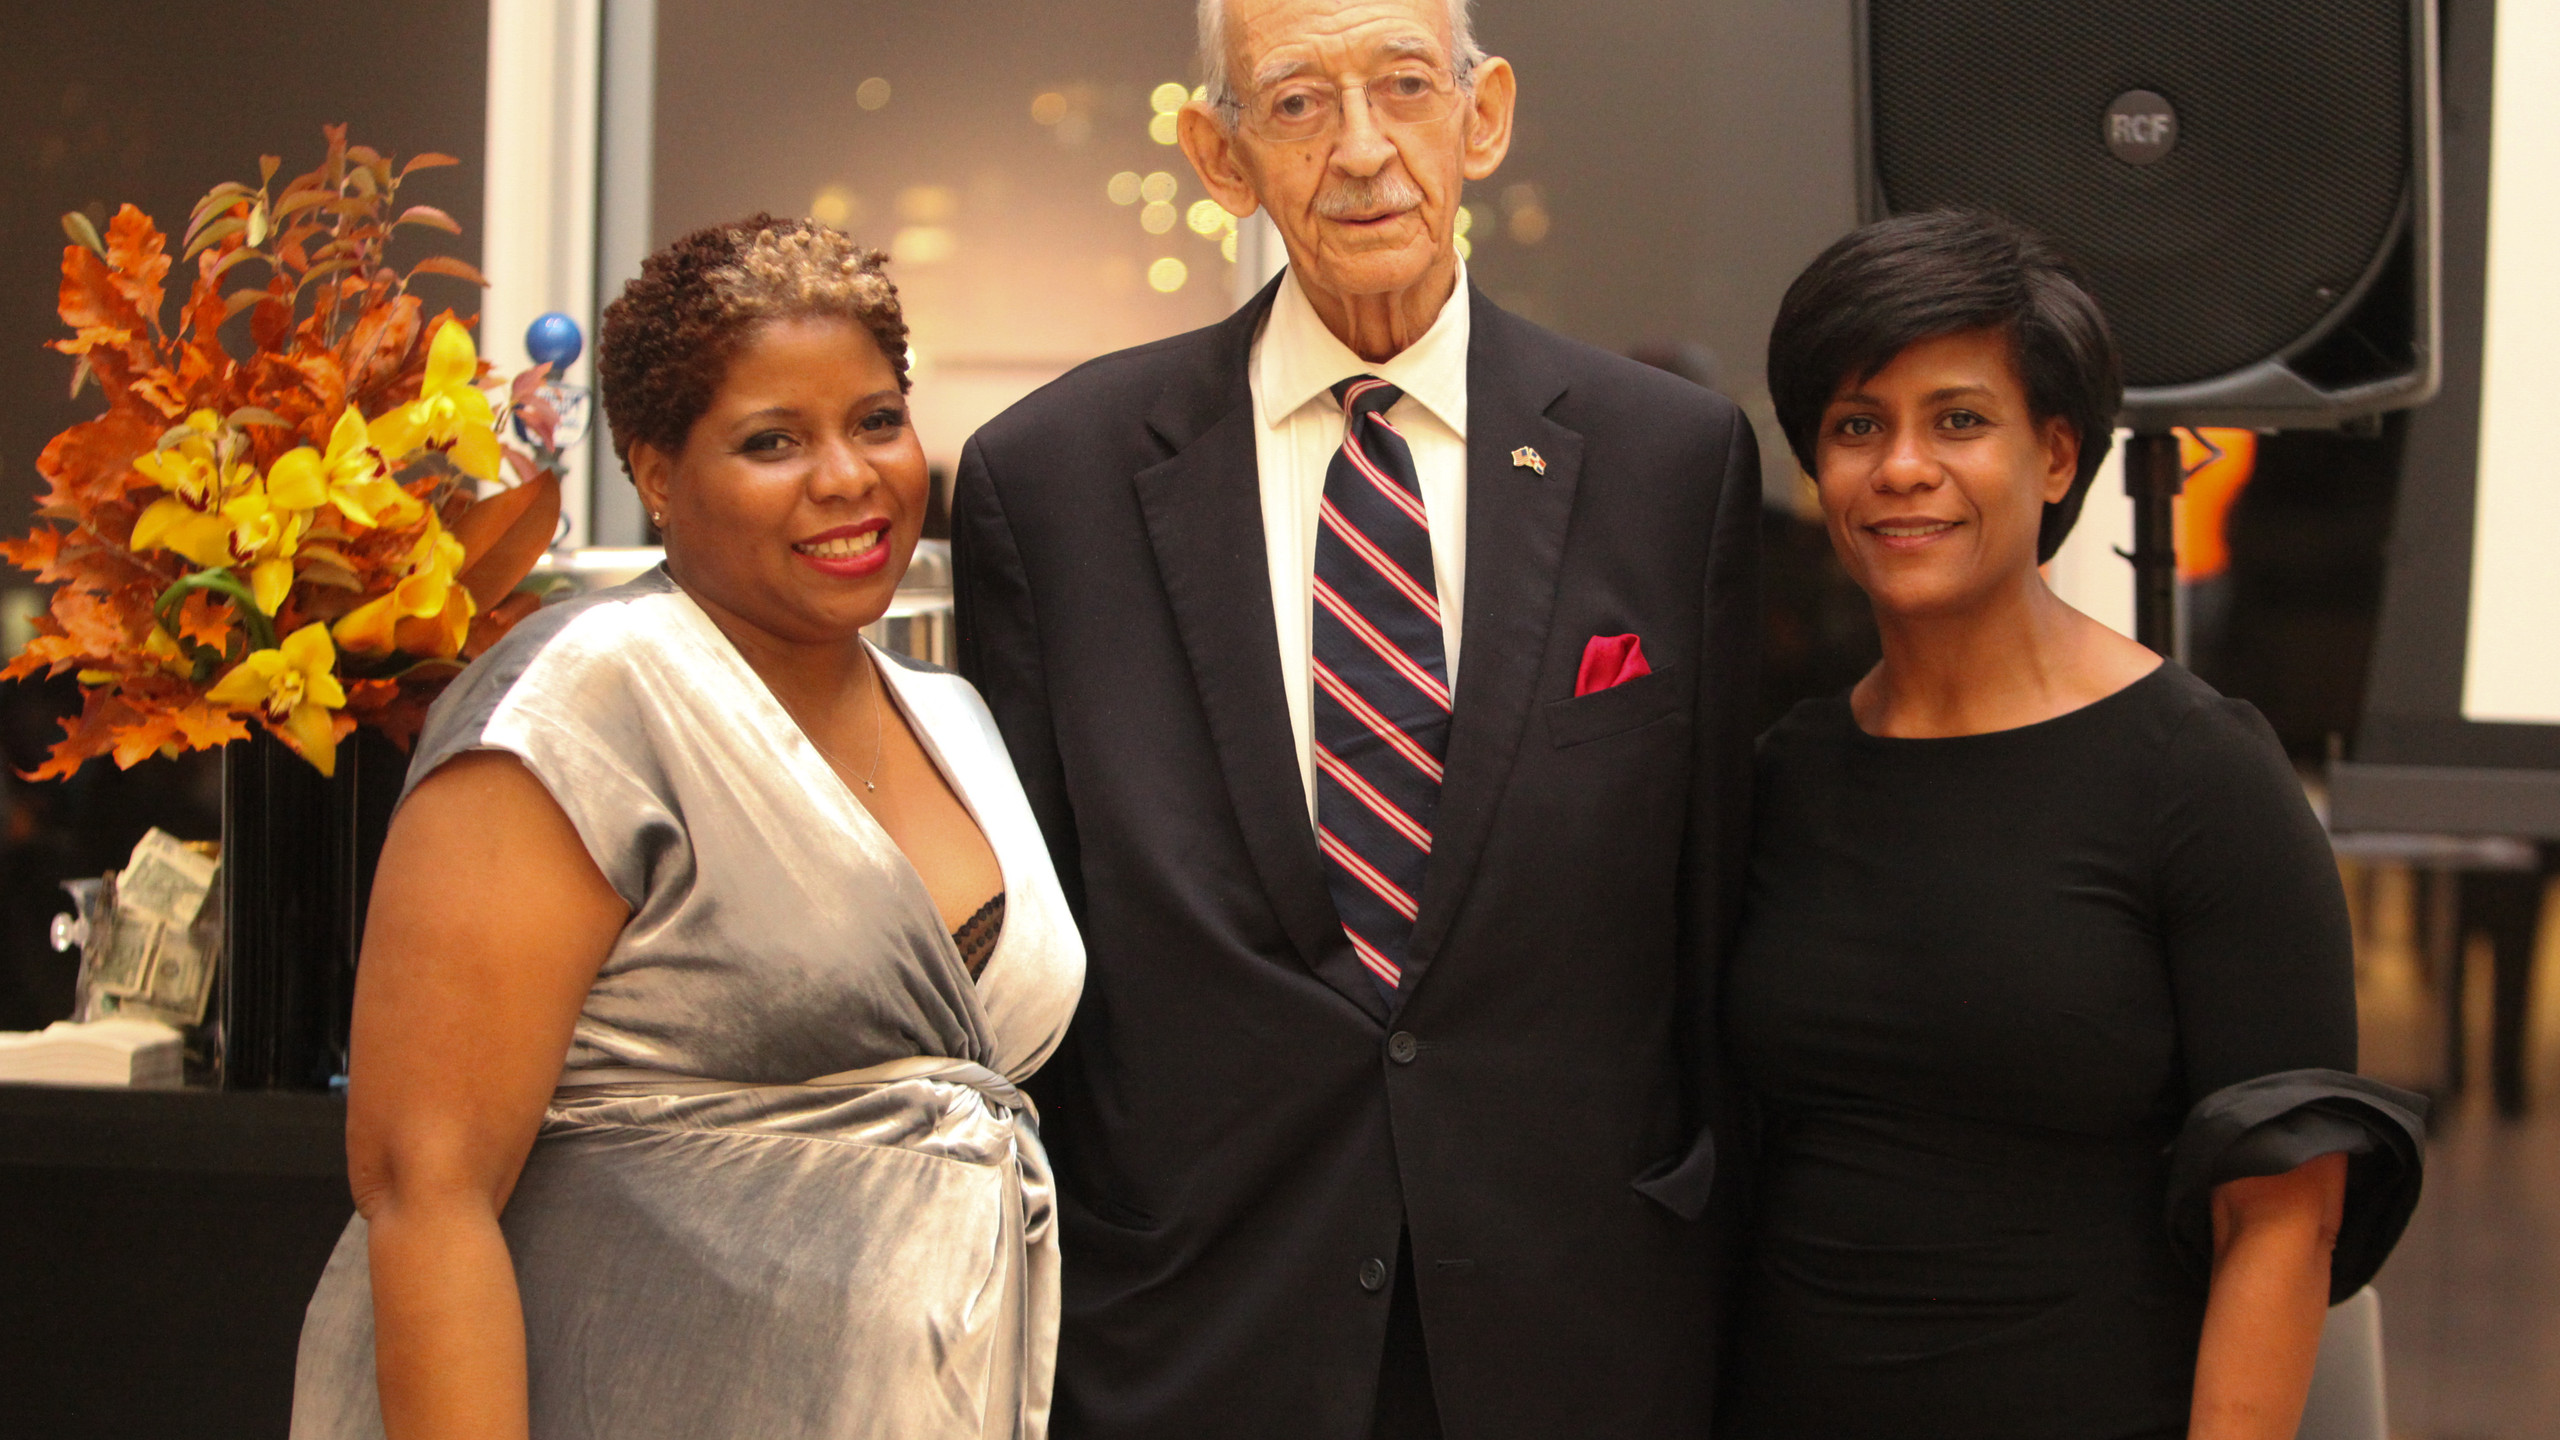 M.L. Wilson Award for Public Service honoree Honorable Herman Denny Farrell